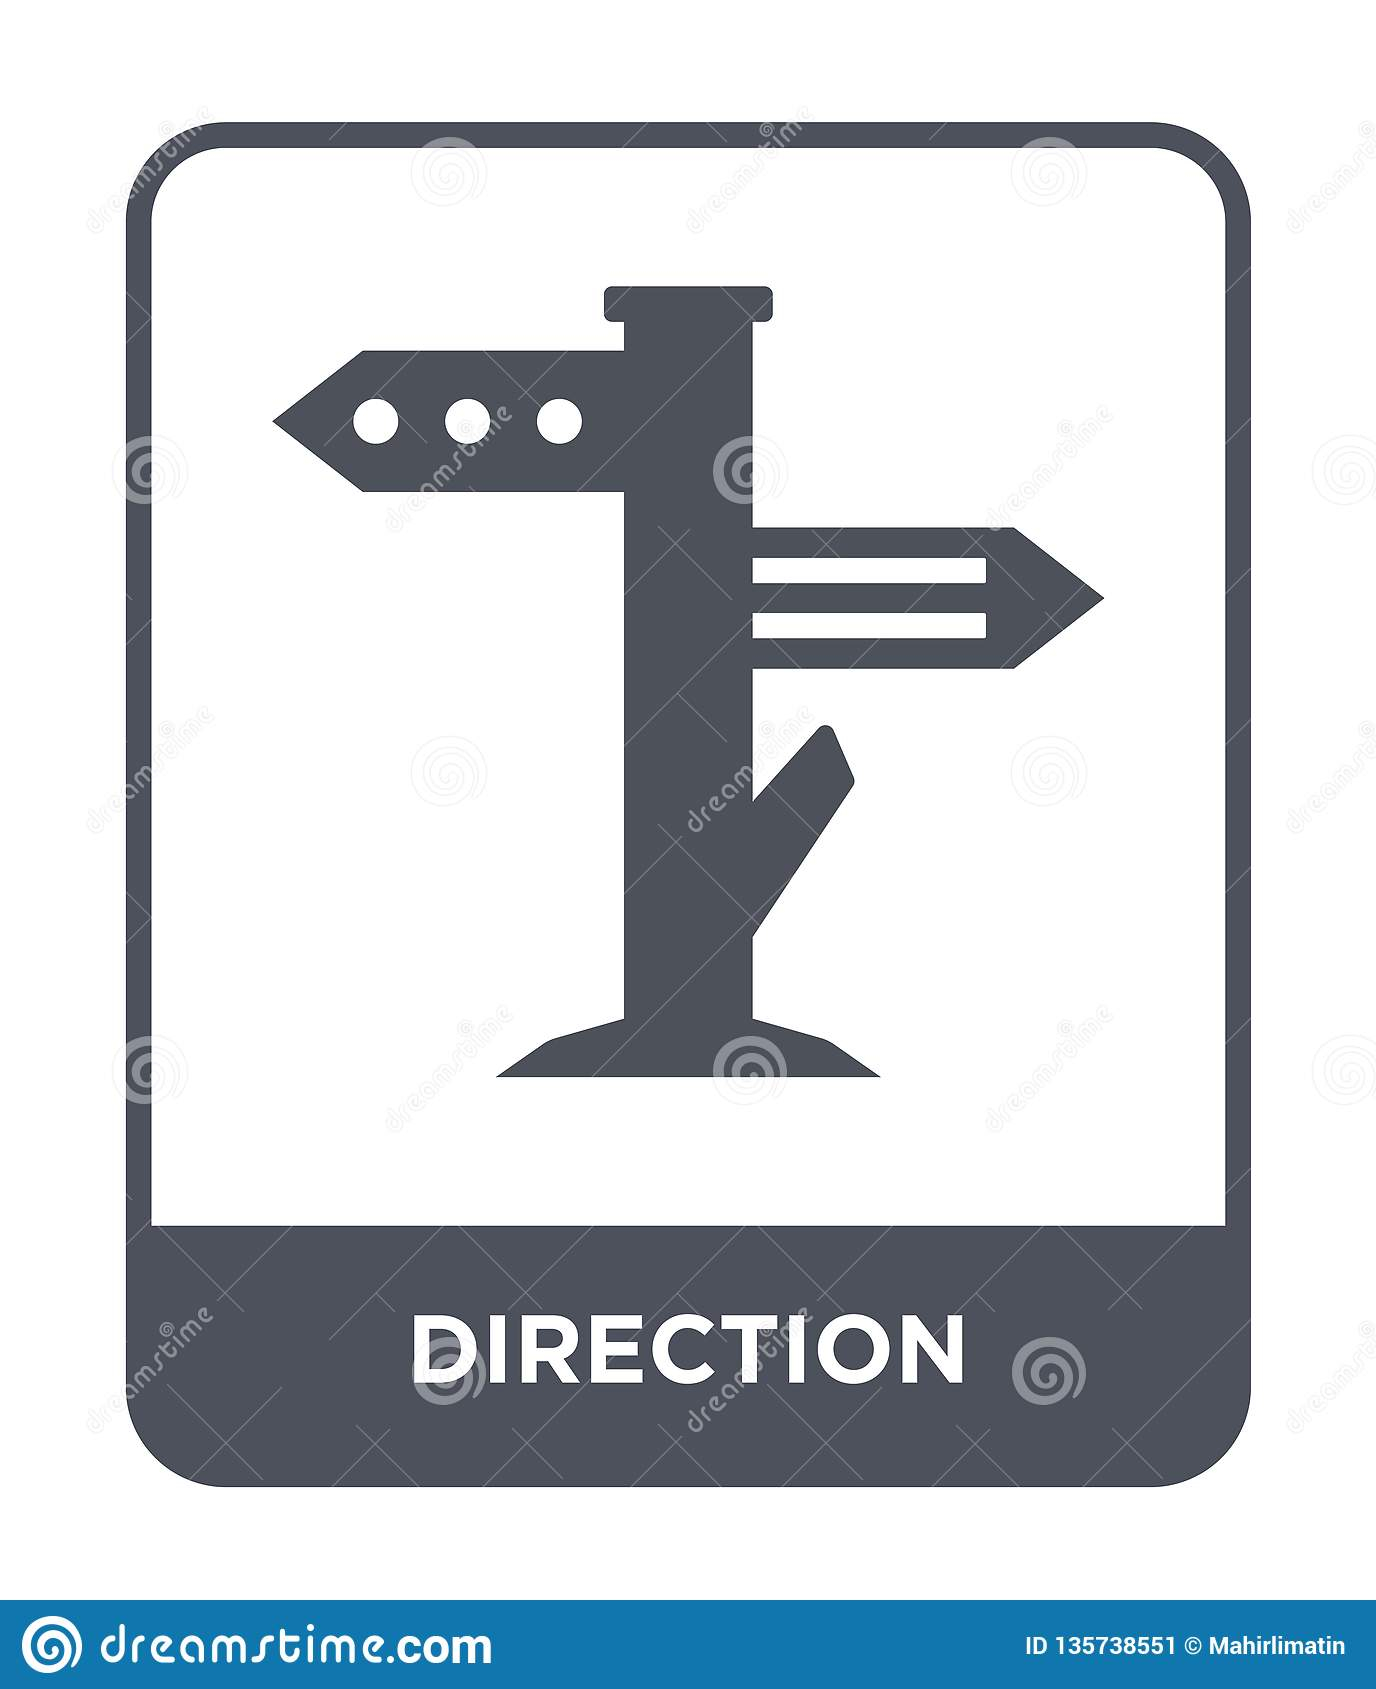 direction icon in trendy design style. direction icon isolated on white background. direction vector icon simple and modern flat